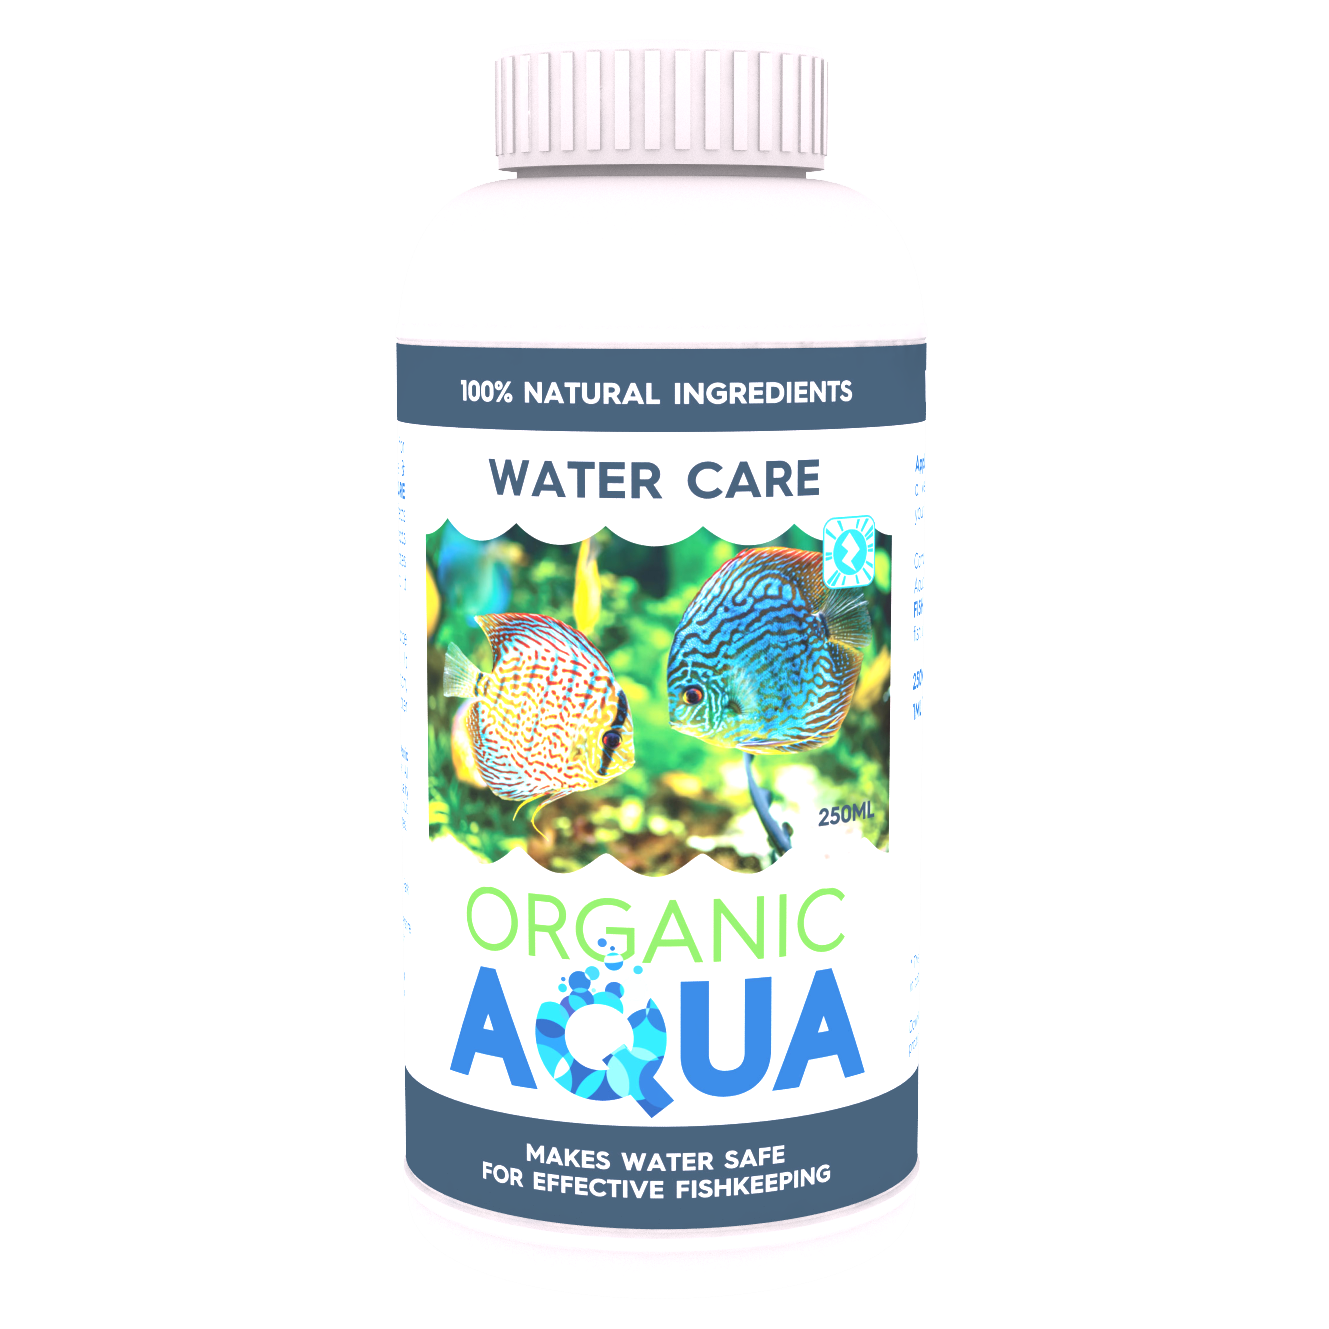 Organic Aqua WATER CARE 250ml